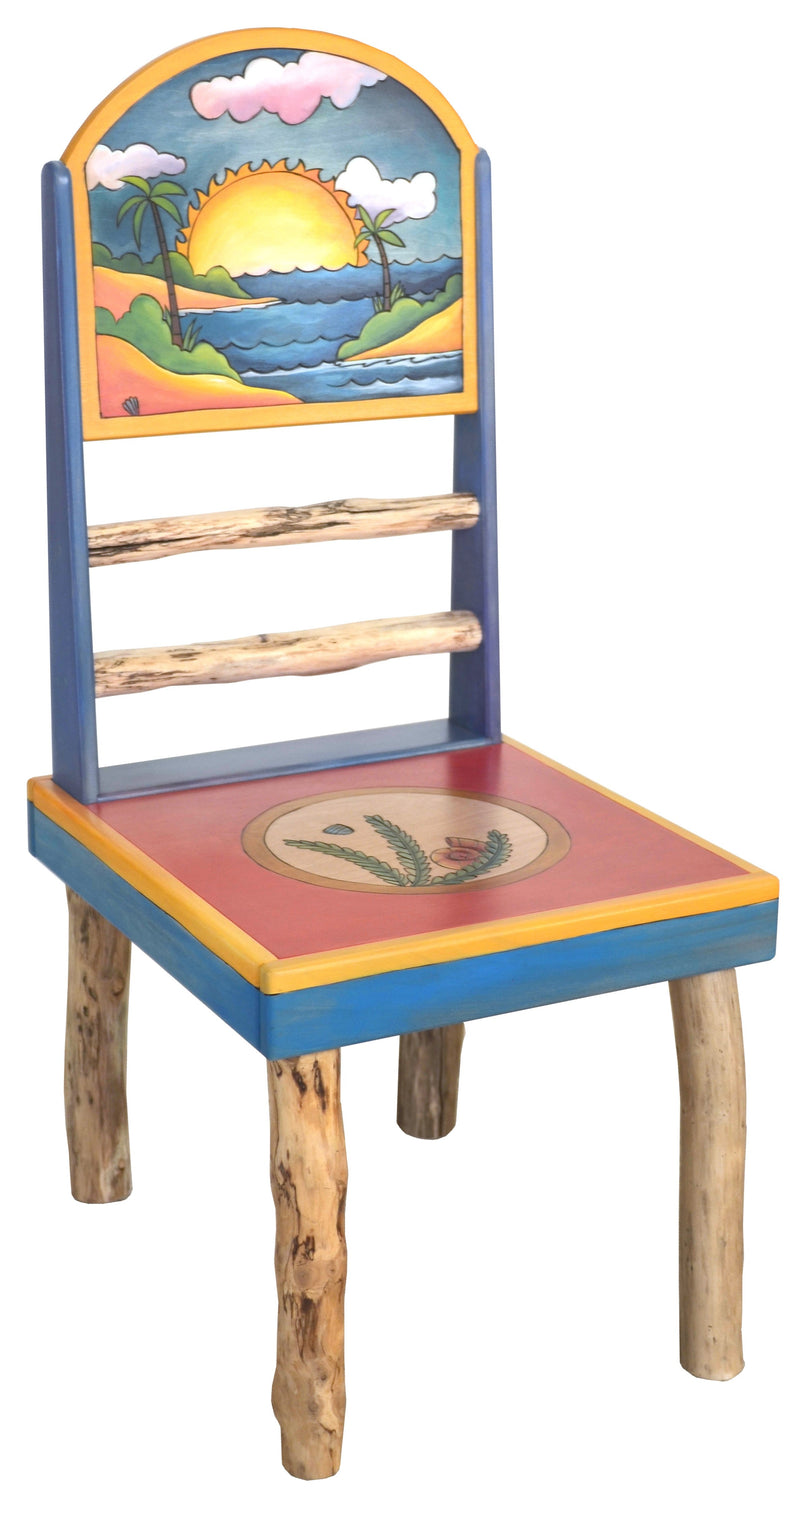 Sticks handmade chair with tropical theme